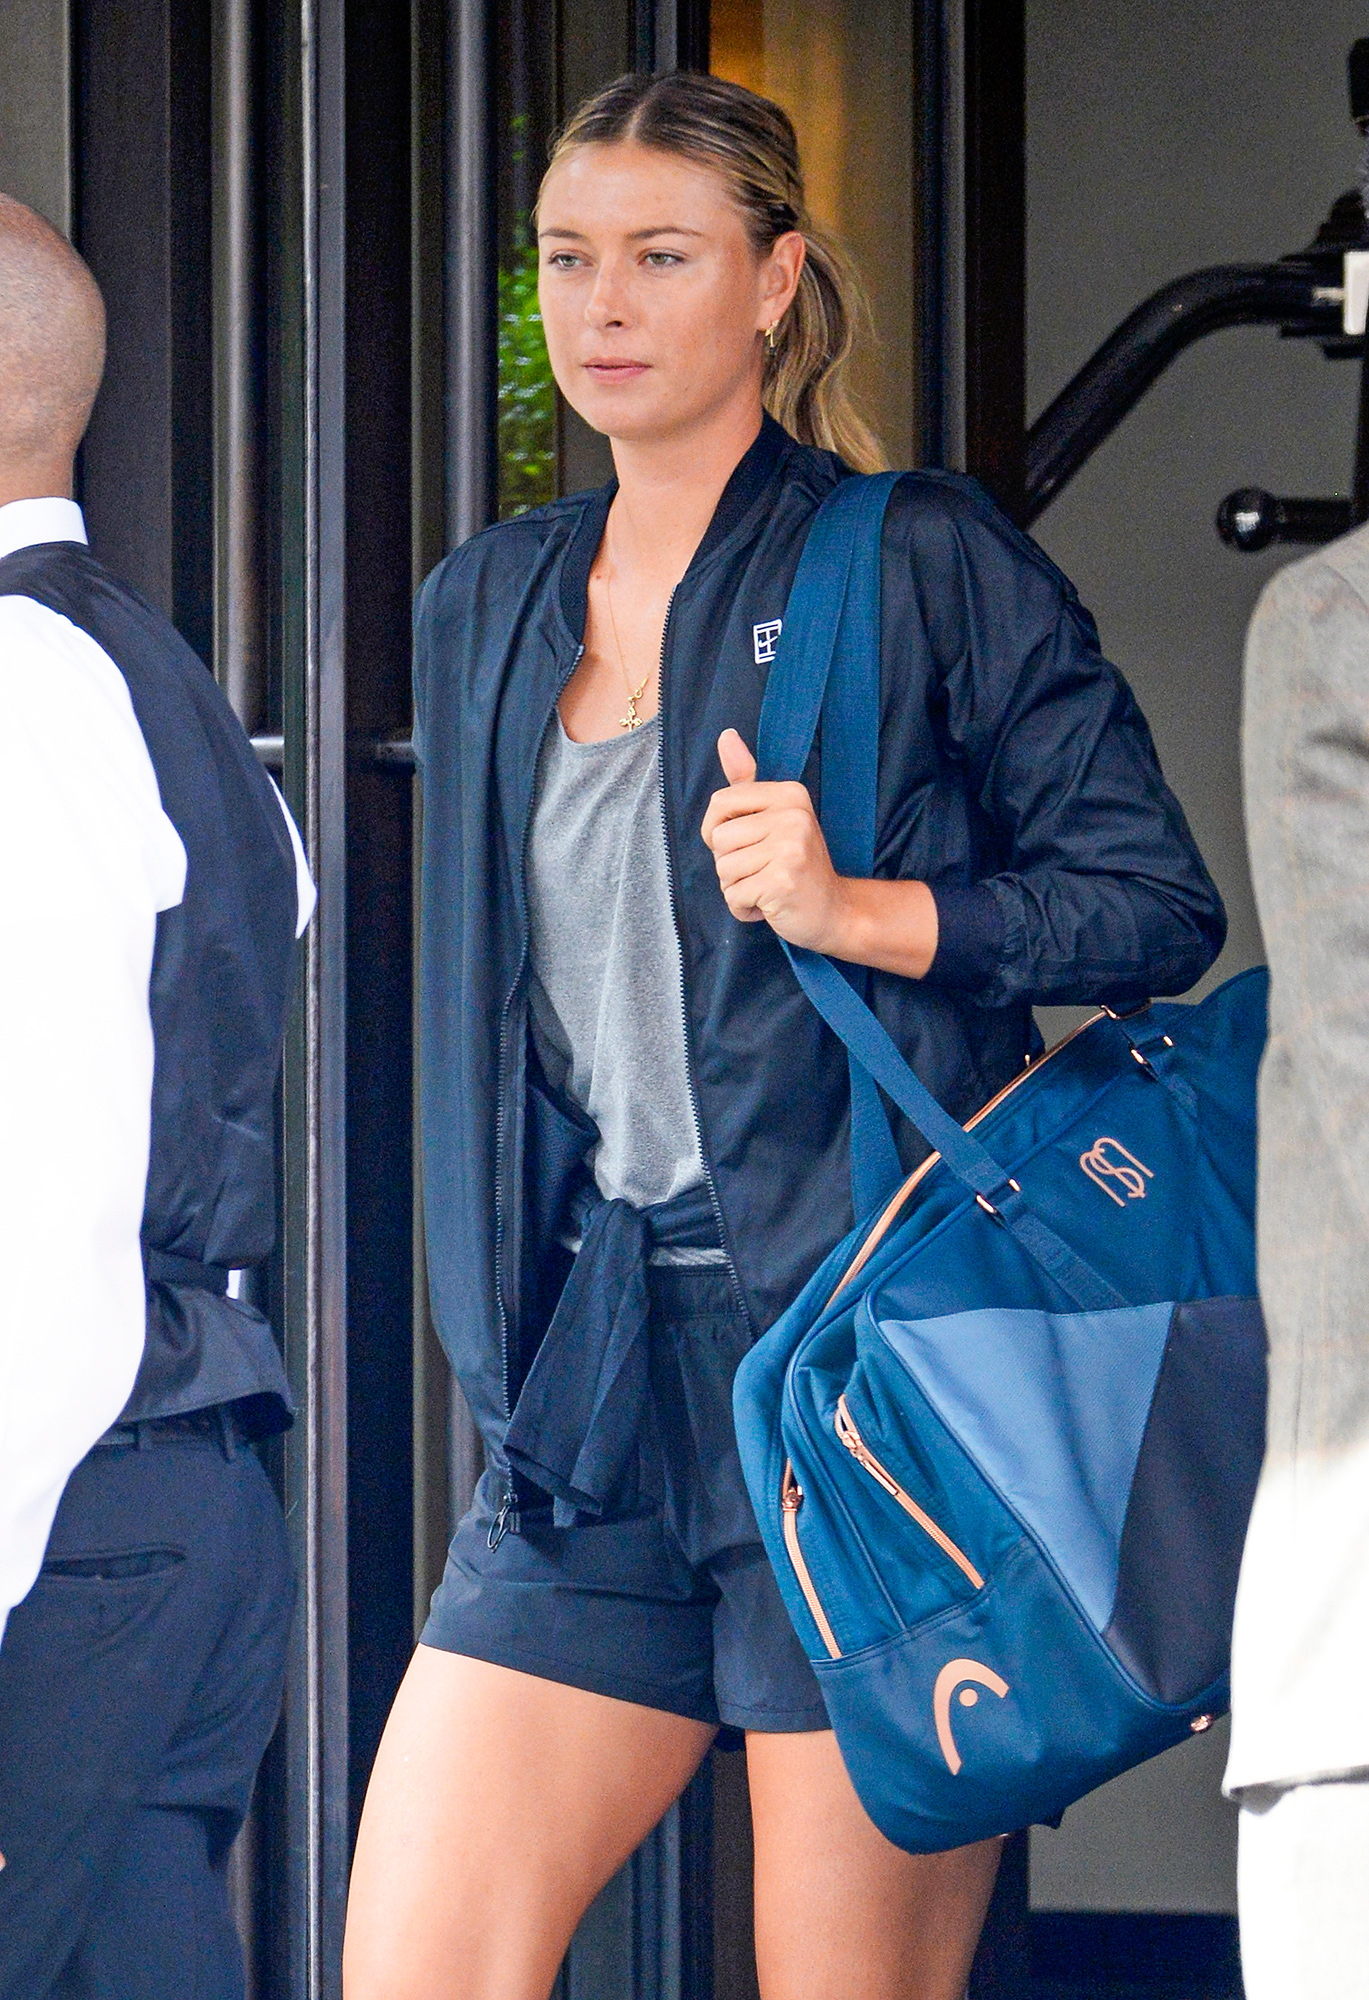 EXCLUSIVE: Maria Sharapova is Spotted as She Exits Her Hotel on Way to Practice at the US Open in Flushing, New York City